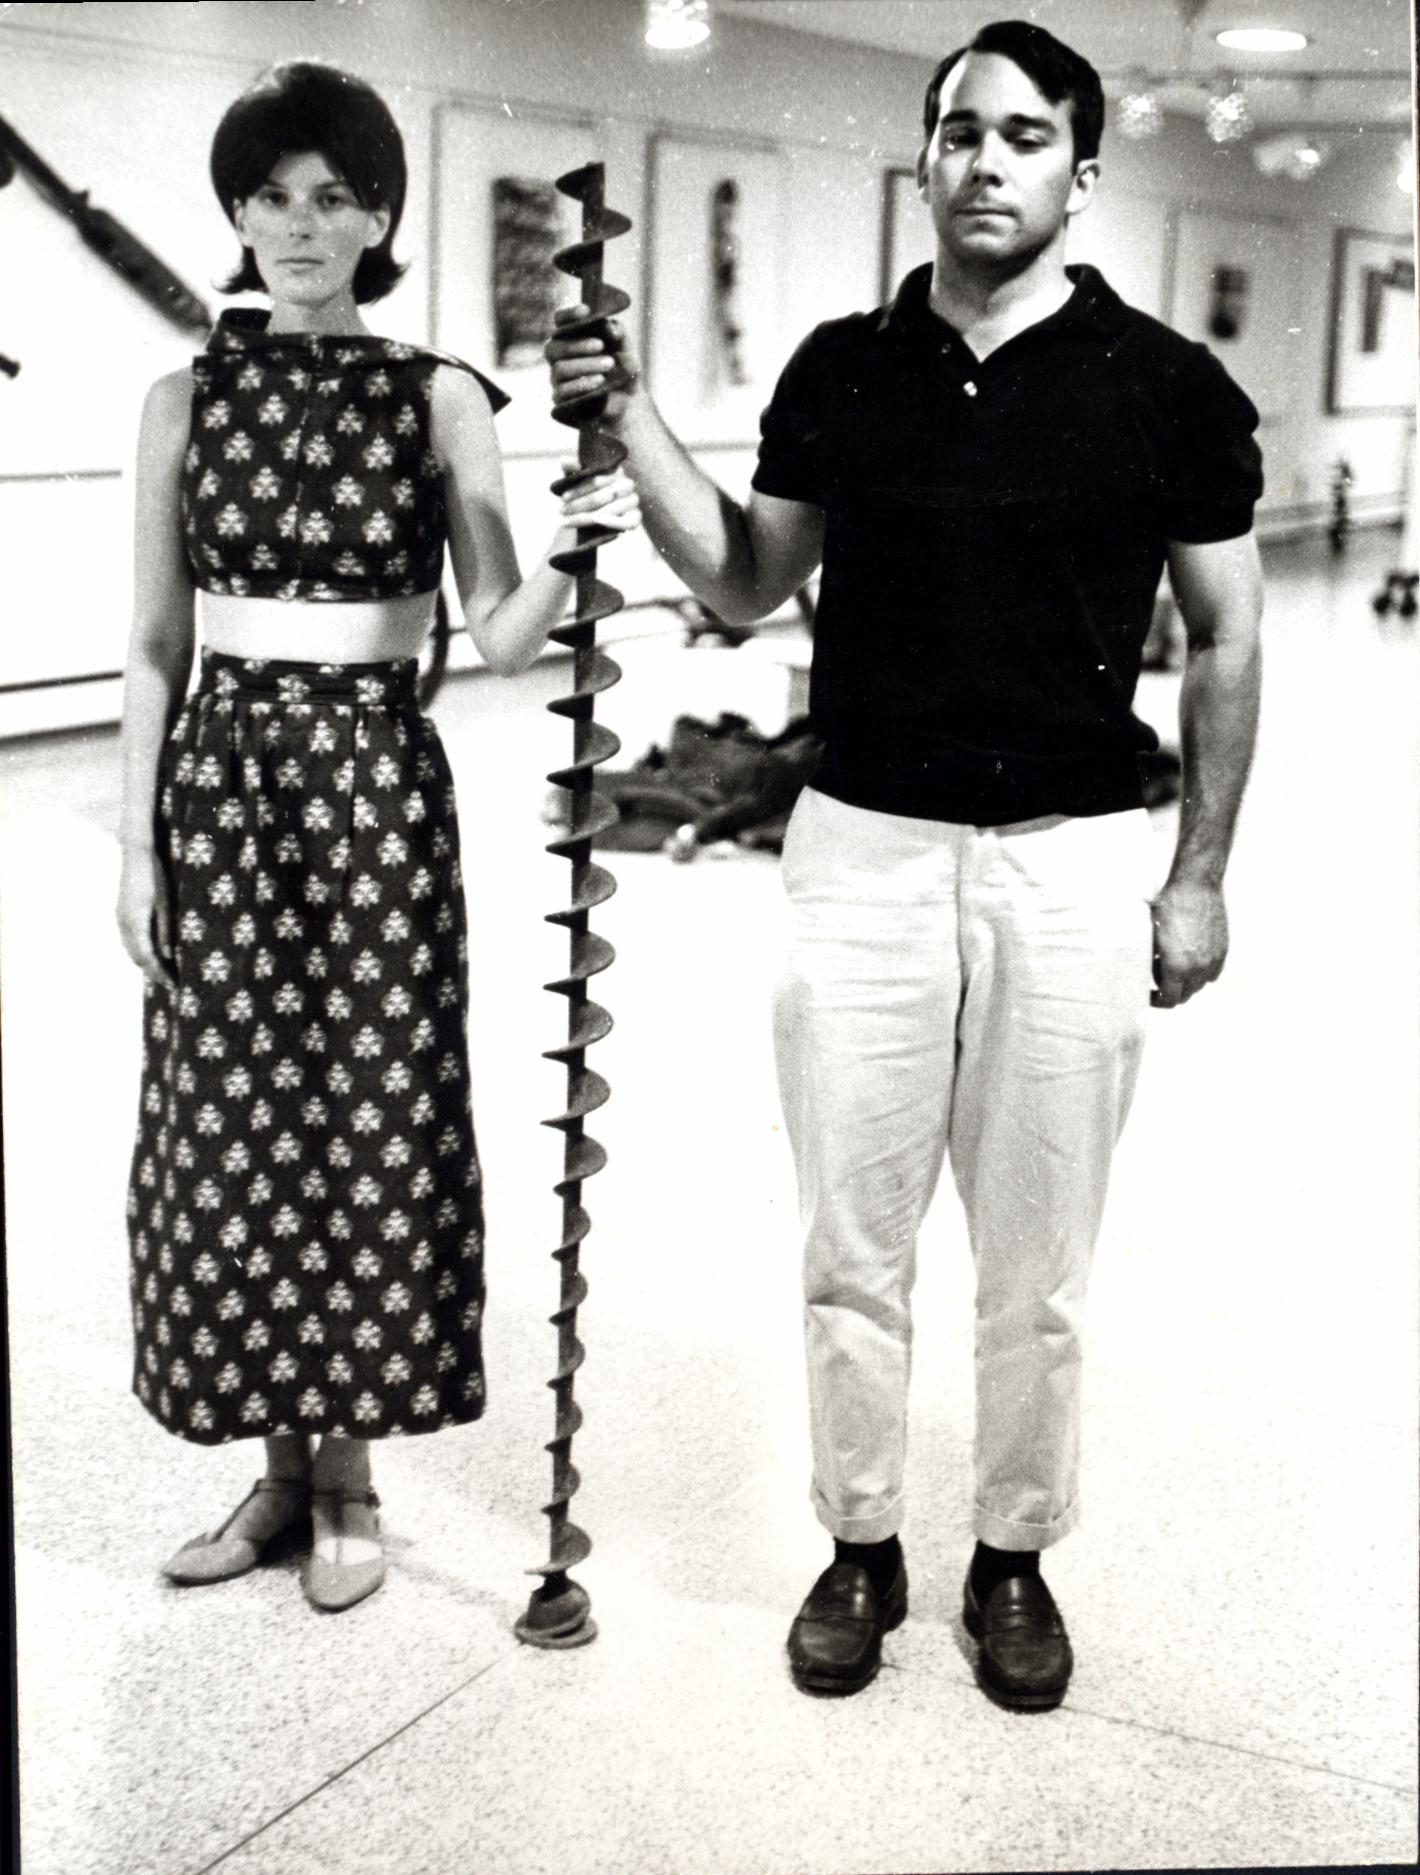 Dick and Karen Venezky (c1967)